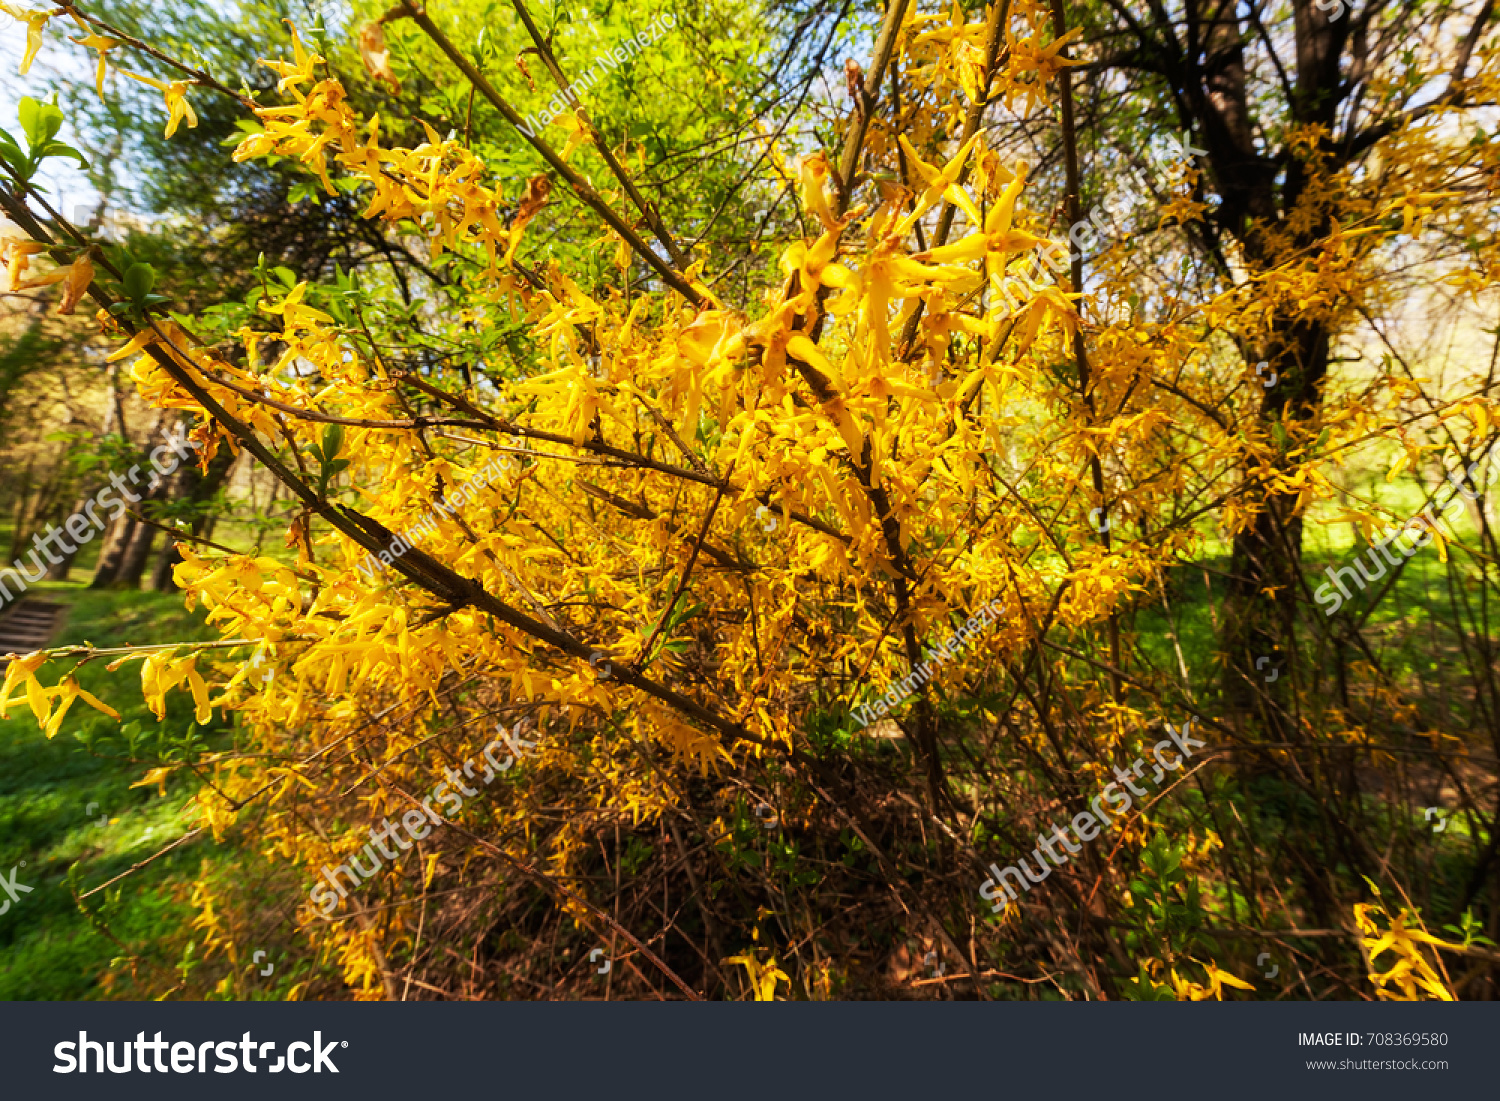 Bush With Small Yellow Flowers On A Branches Note Shallow Depth Of